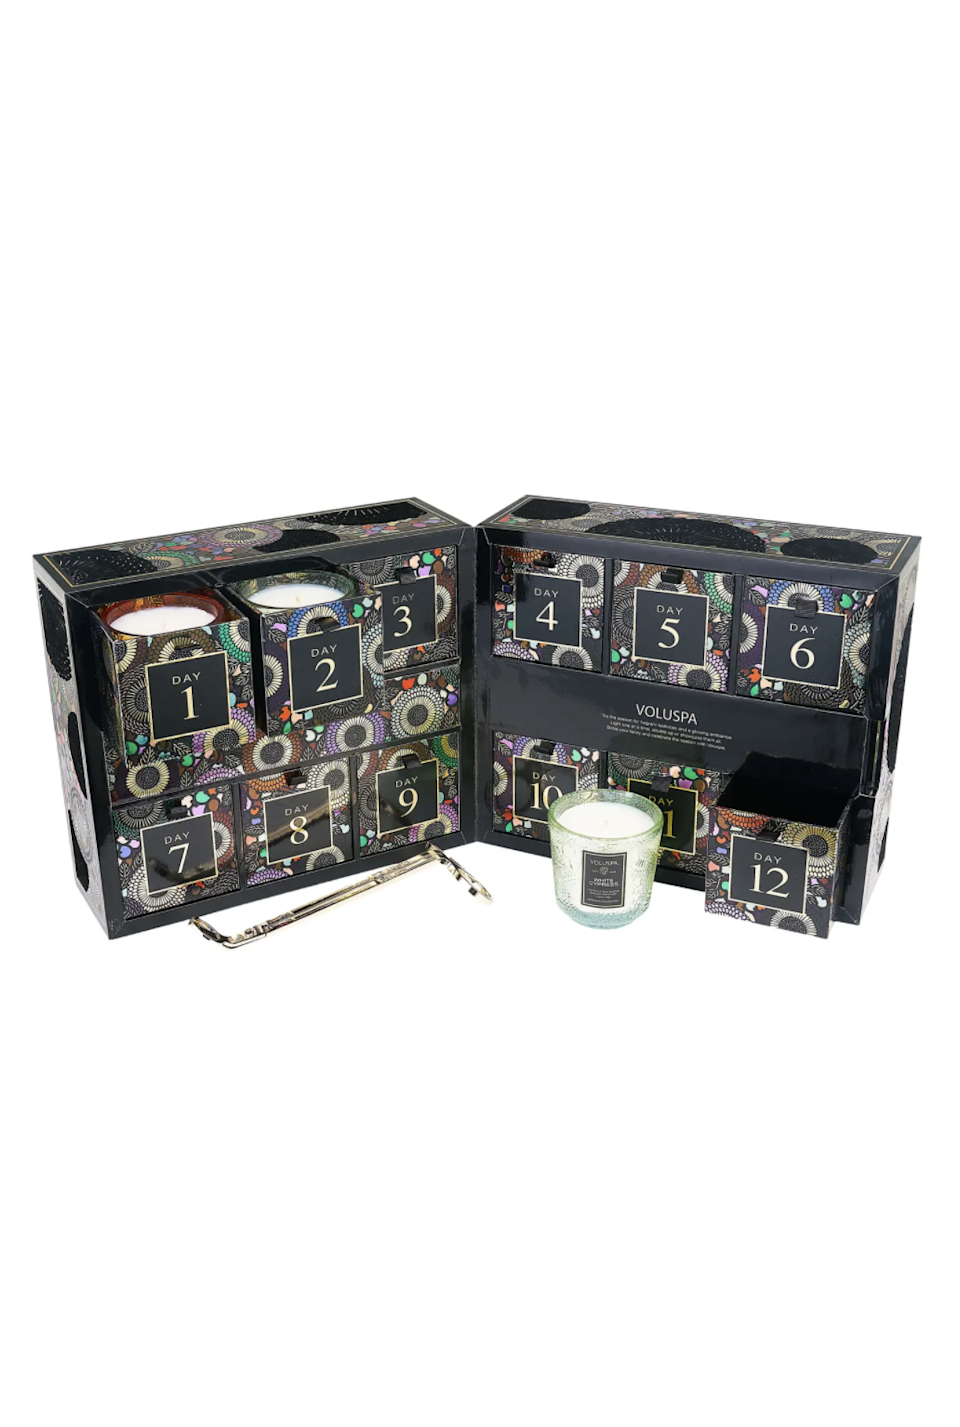 """<h2>Voluspa Japonica Advent Calendar Candle Set</h2><br>Share these 12 festive candles (or keep them all for yourself — no judgment) with this sensorial advent calendar.<br><br><strong>Voluspa</strong> Japonica Advent Calendar Candle Set, $, available at <a href=""""https://go.skimresources.com/?id=30283X879131&url=https%3A%2F%2Fwww.nordstrom.com%2Fs%2Fvoluspa-japonica-advent-calendar-candle-set%2F6458112%3F"""" rel=""""nofollow noopener"""" target=""""_blank"""" data-ylk=""""slk:Nordstrom"""" class=""""link rapid-noclick-resp"""">Nordstrom</a>"""